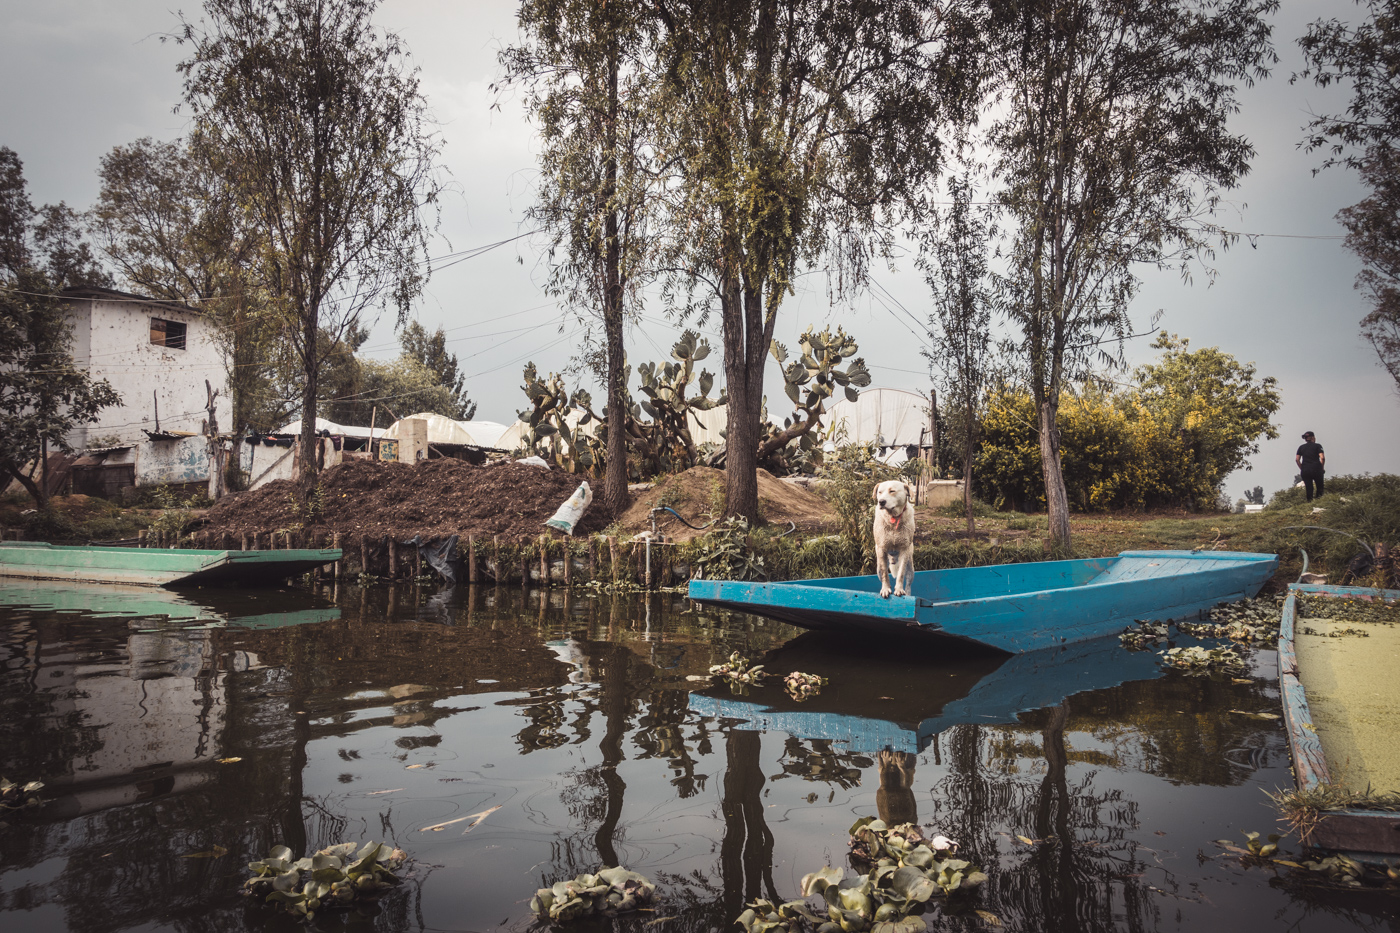 Xochimilco trajineras: dogs on the canal's edge in Mexico City, Mexico